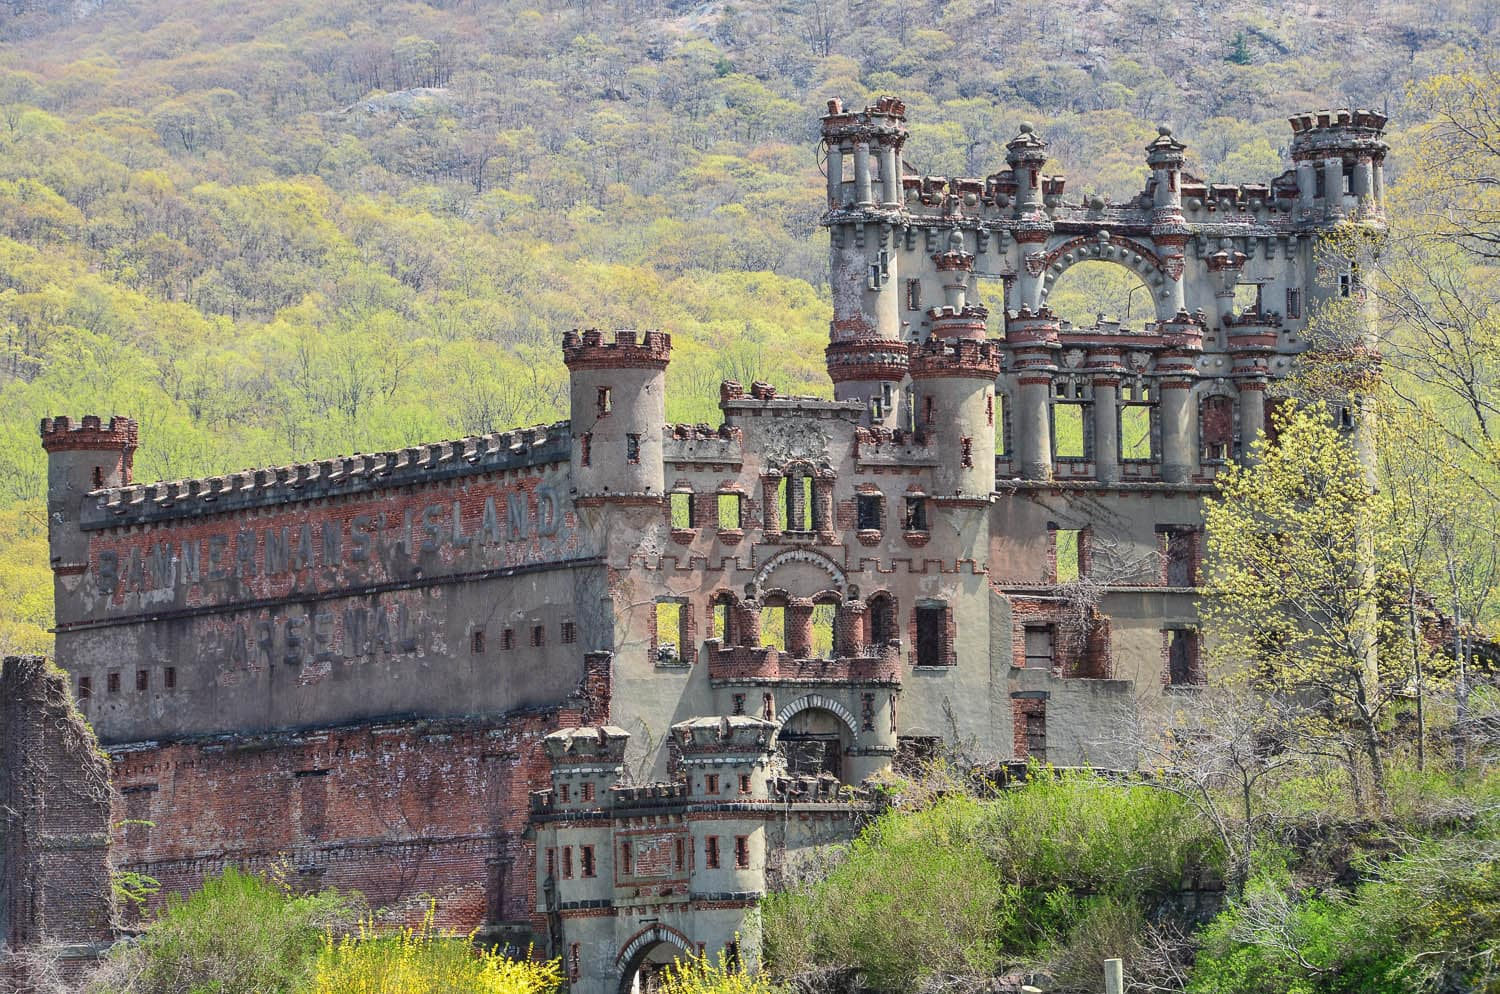 Storming the Castle on the Bannerman Island Tour